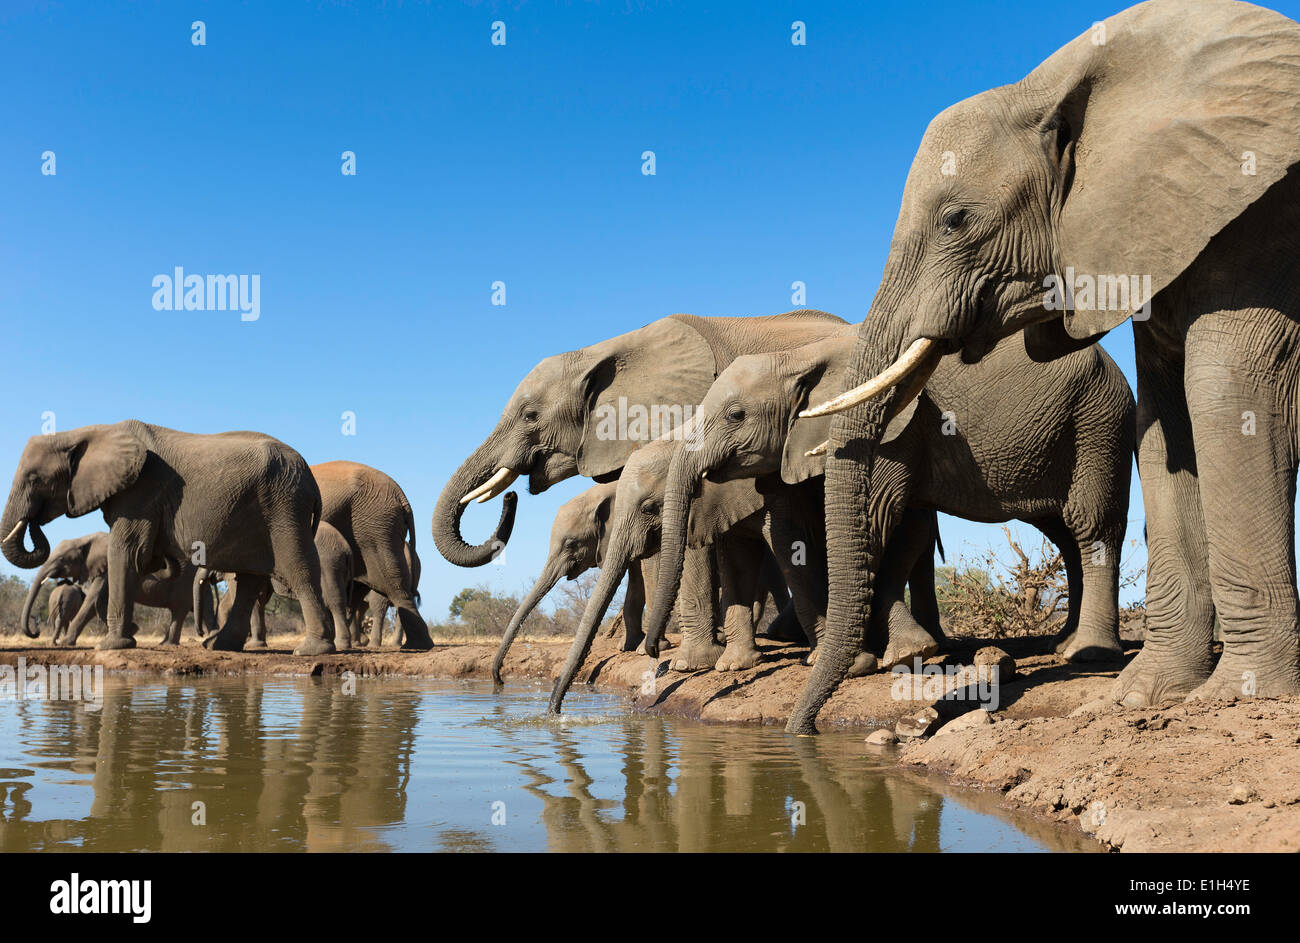 Herd of African elephants (Loxodonta africana) drinking at watering hole, Mashatu game reserve, Botswana, Africa Stock Photo